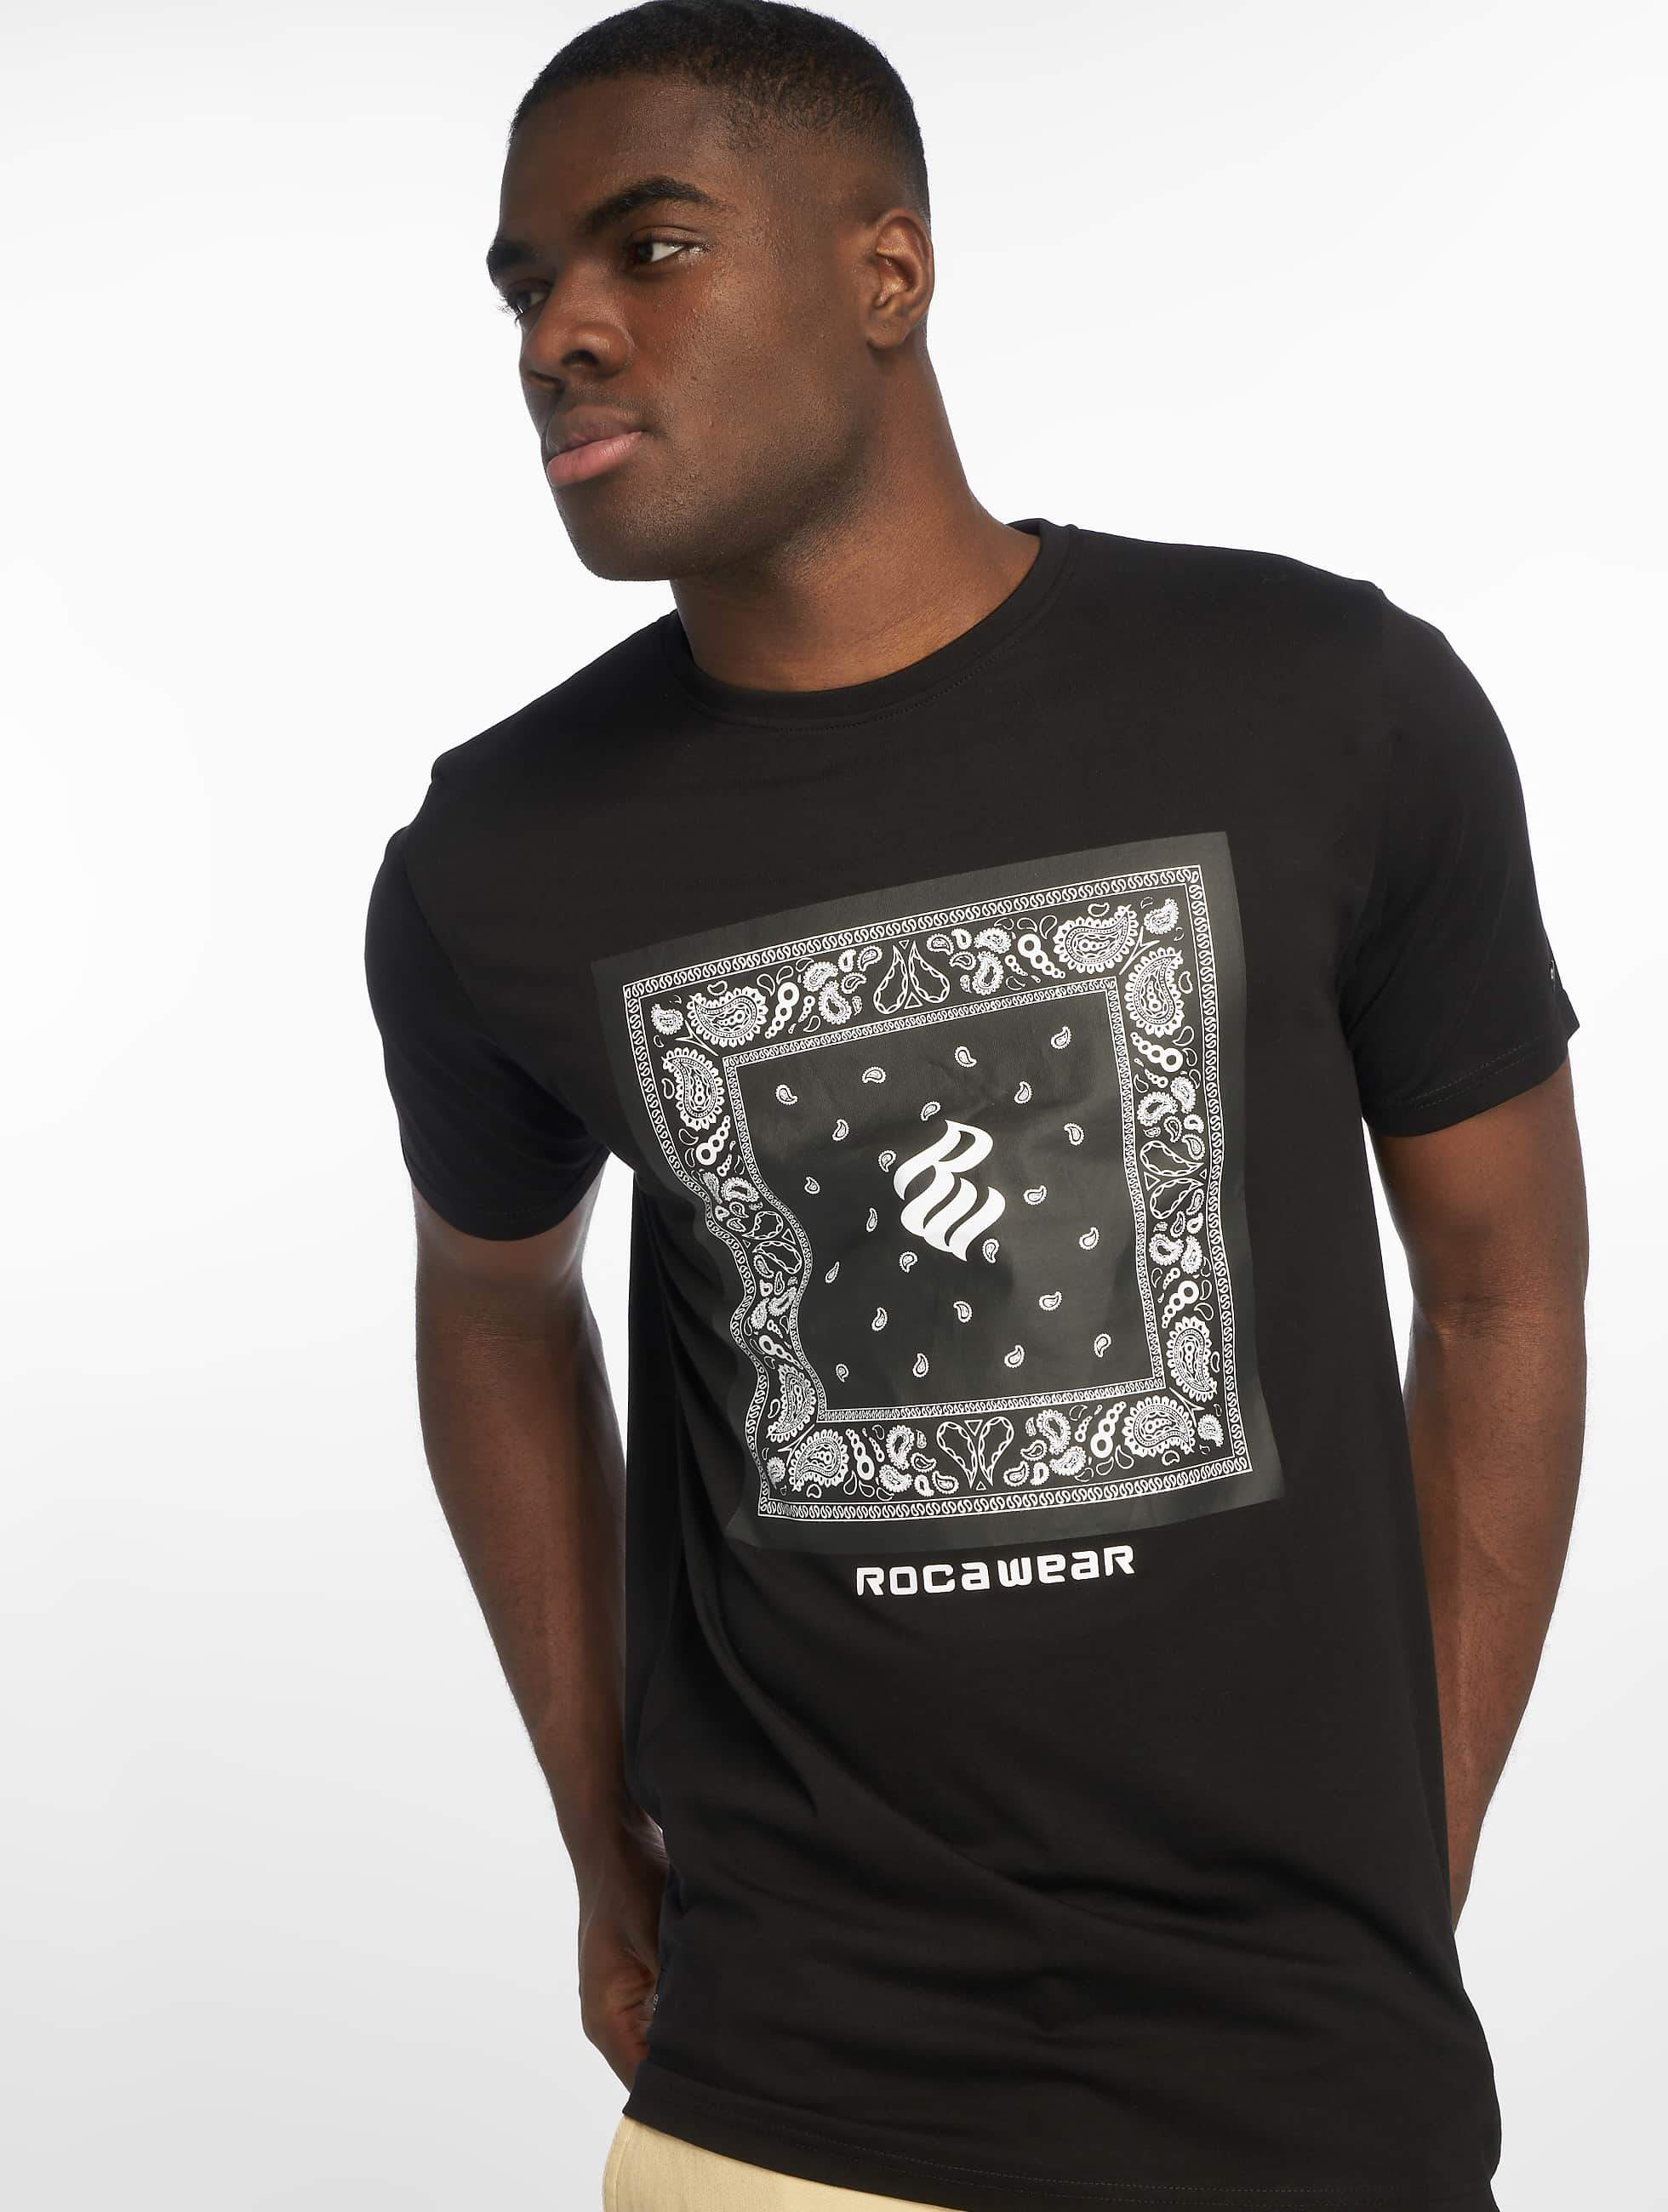 Rocawear / T-Shirt Bandana in black M